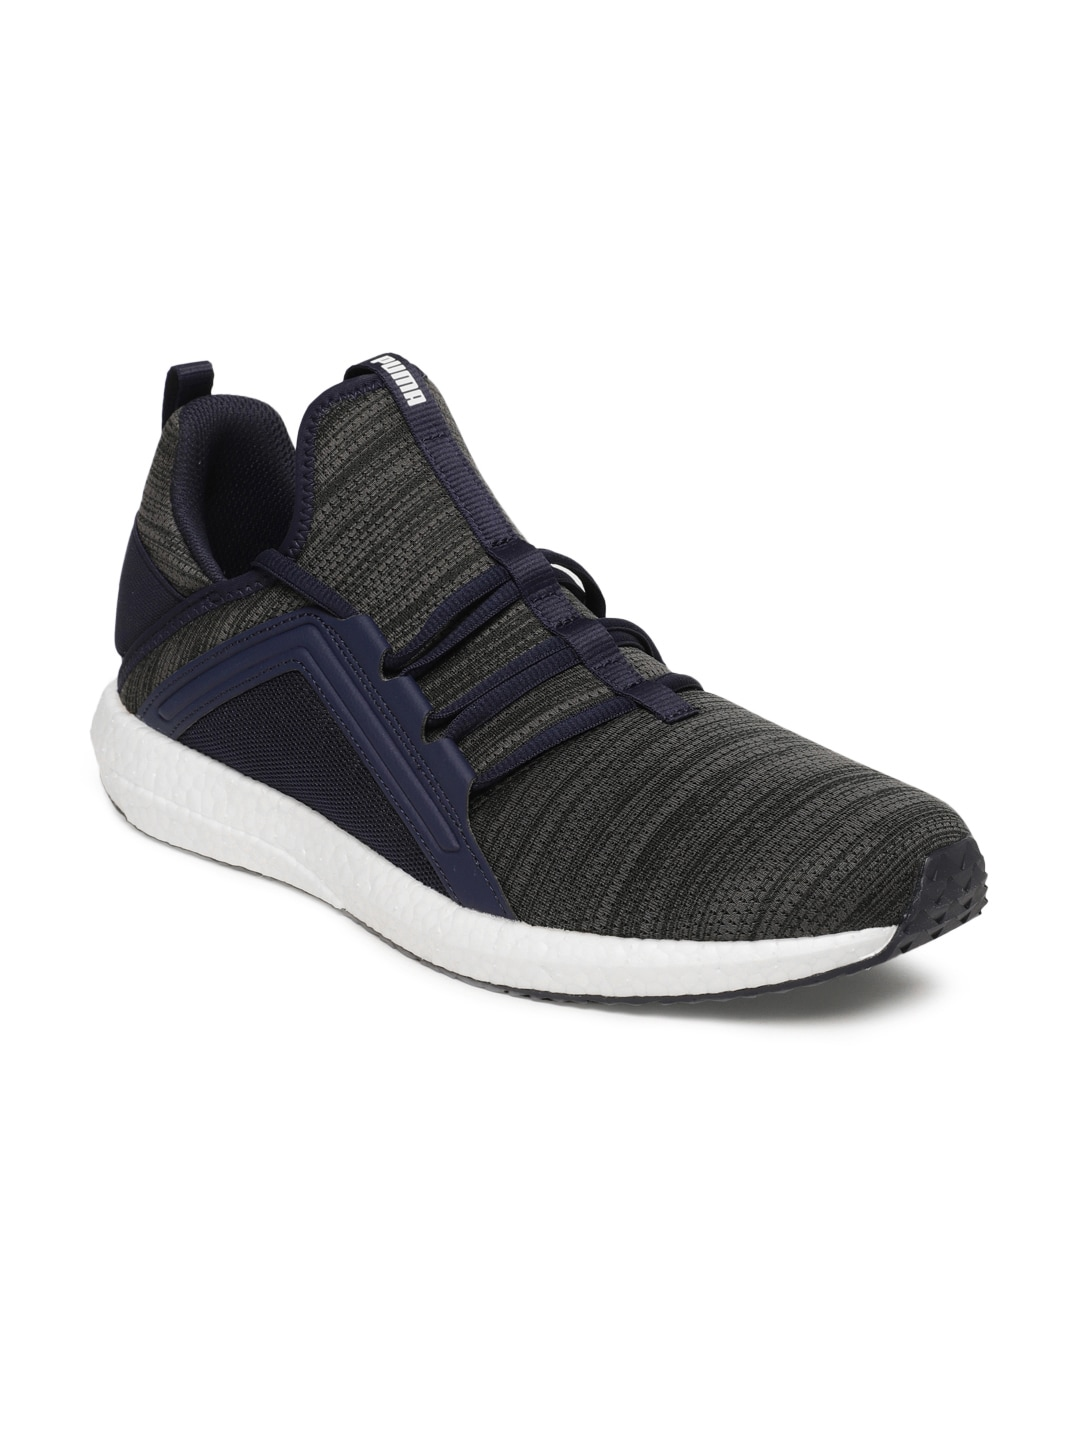 Running puma shoes black photo advise to wear for everyday in 2019